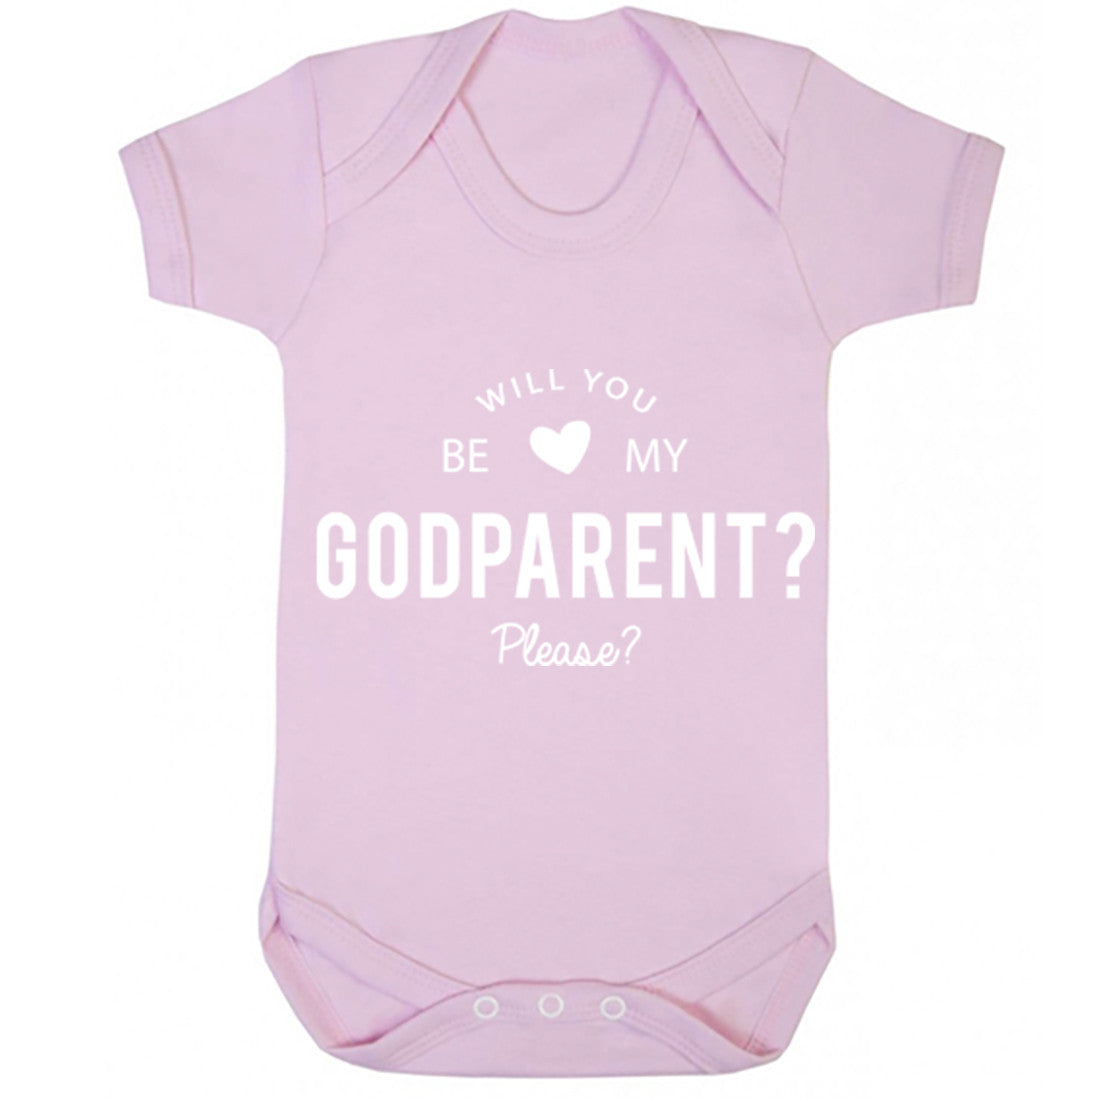 Will You Be My Godparent Please? Baby Vest K0112